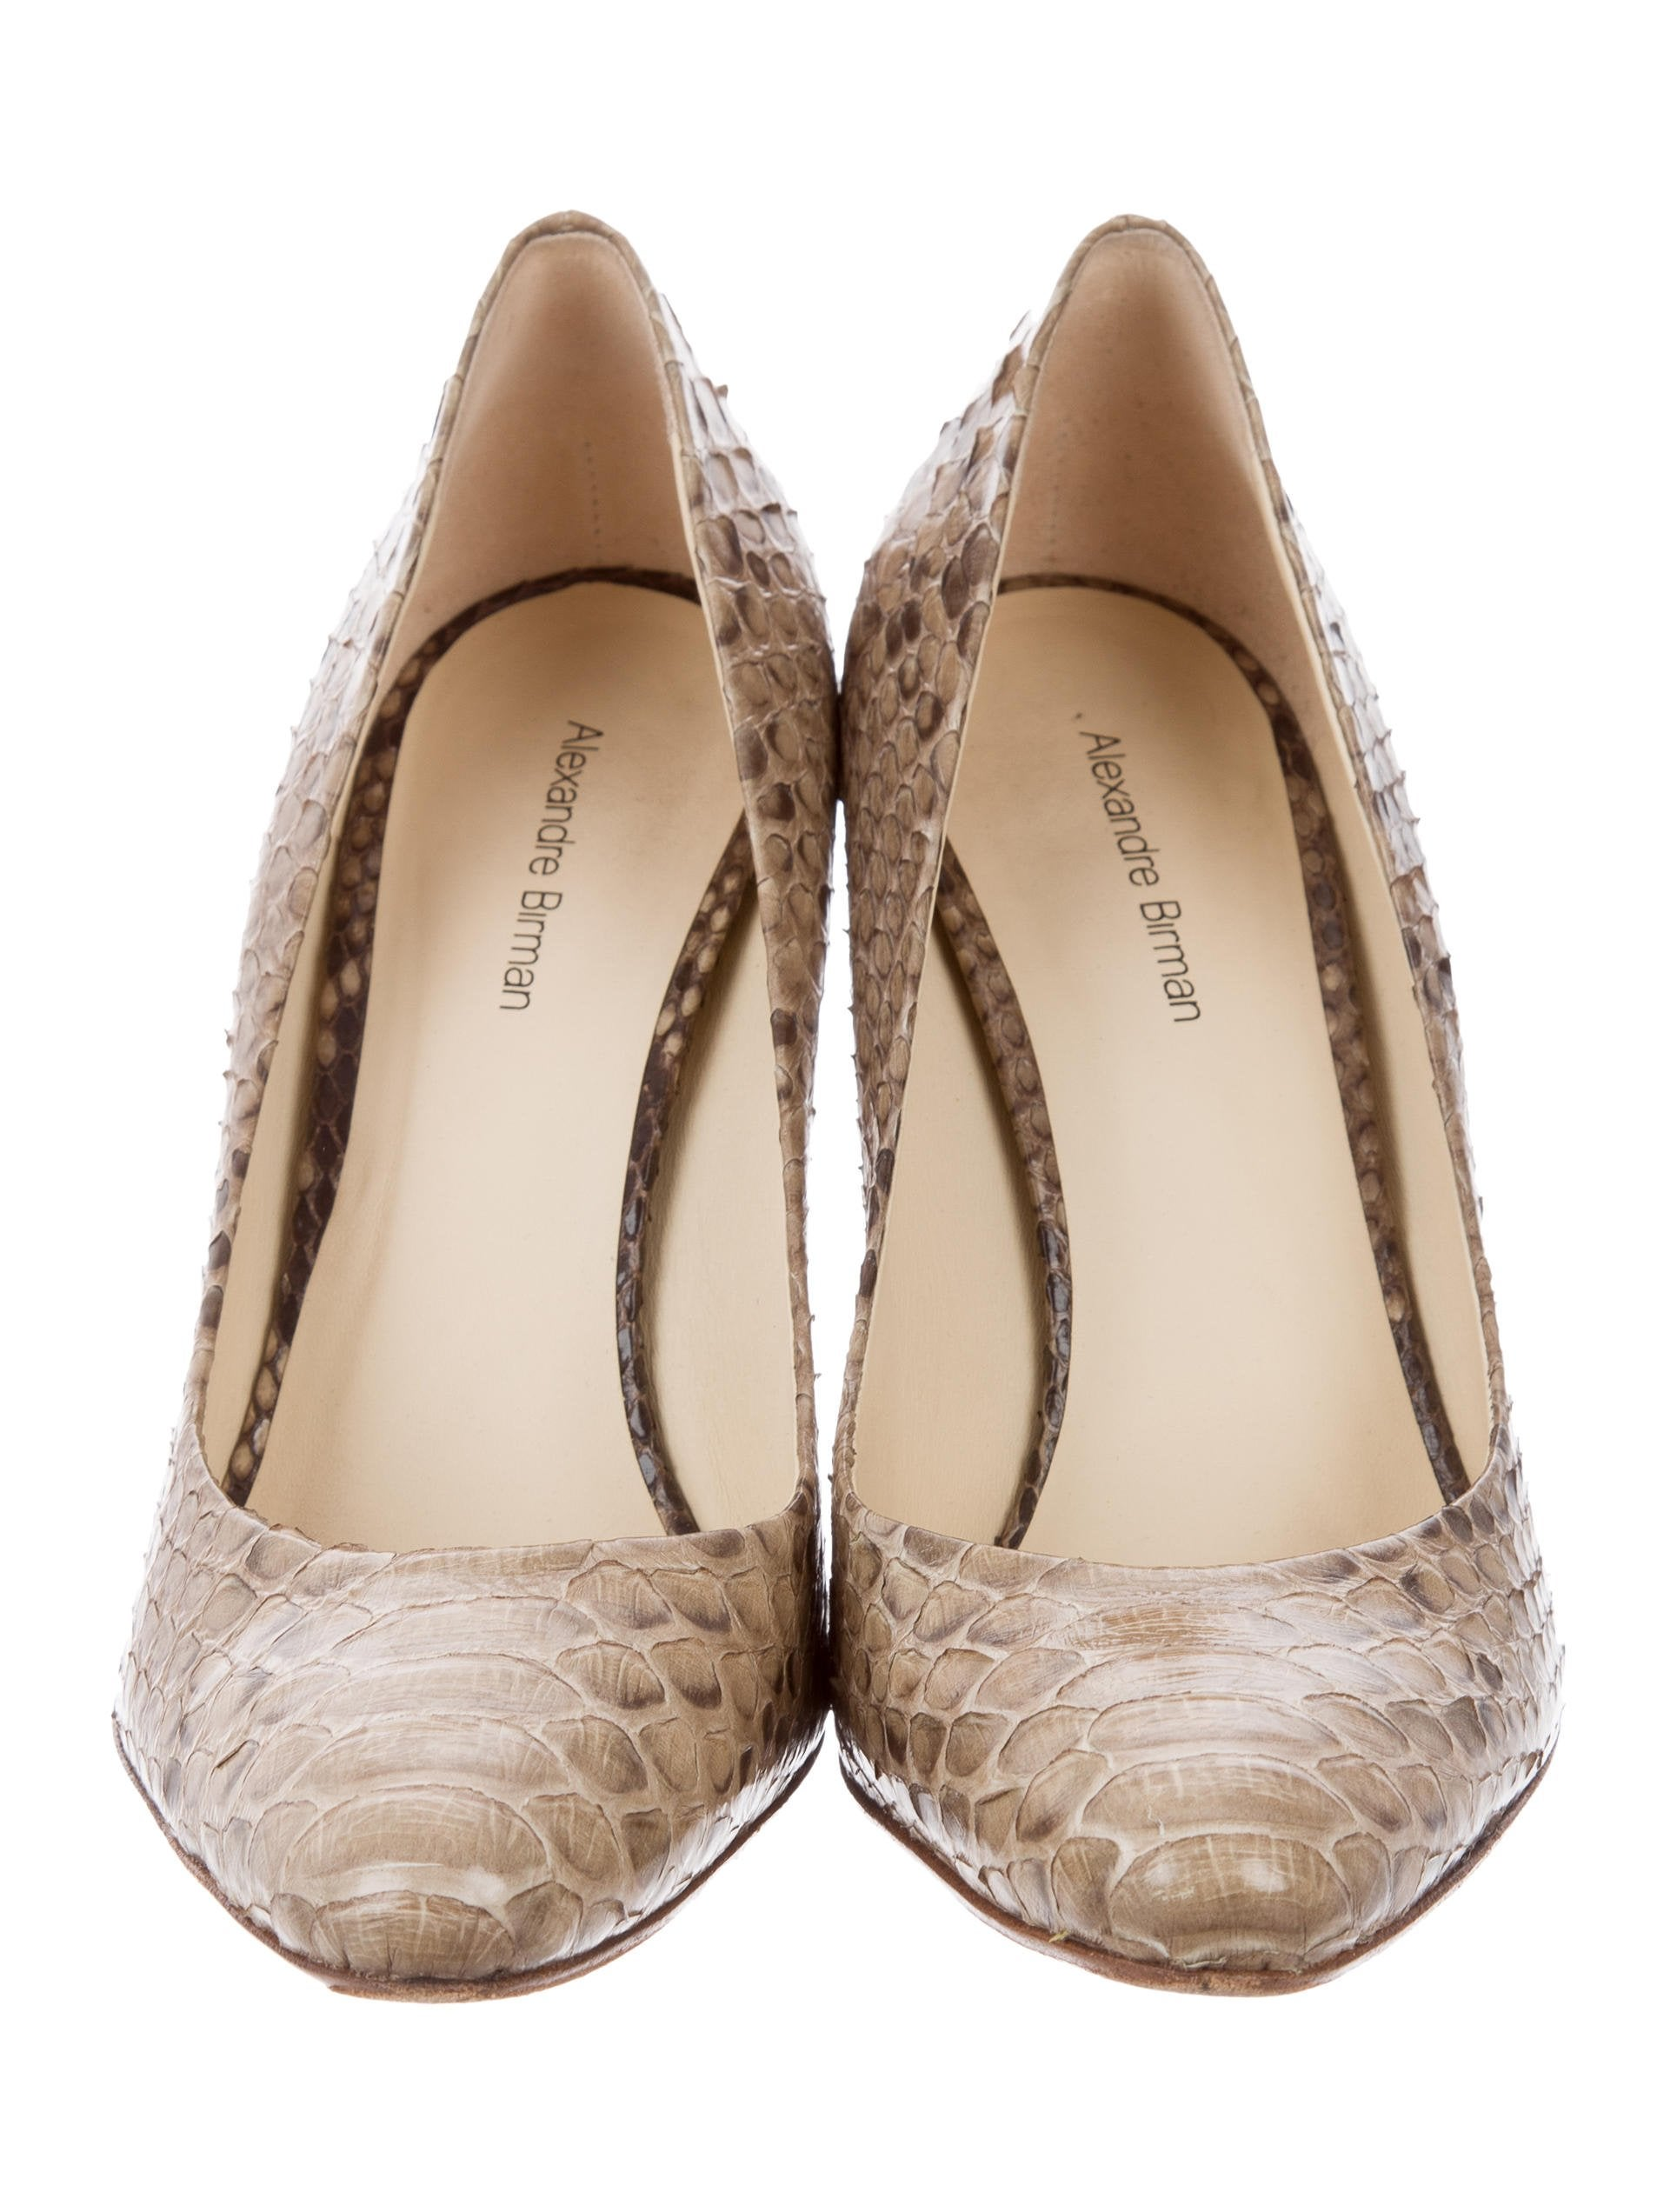 Alexandre Birman Snakeskin Pointed-Toe pumps clearance online official site R5F0QXpN